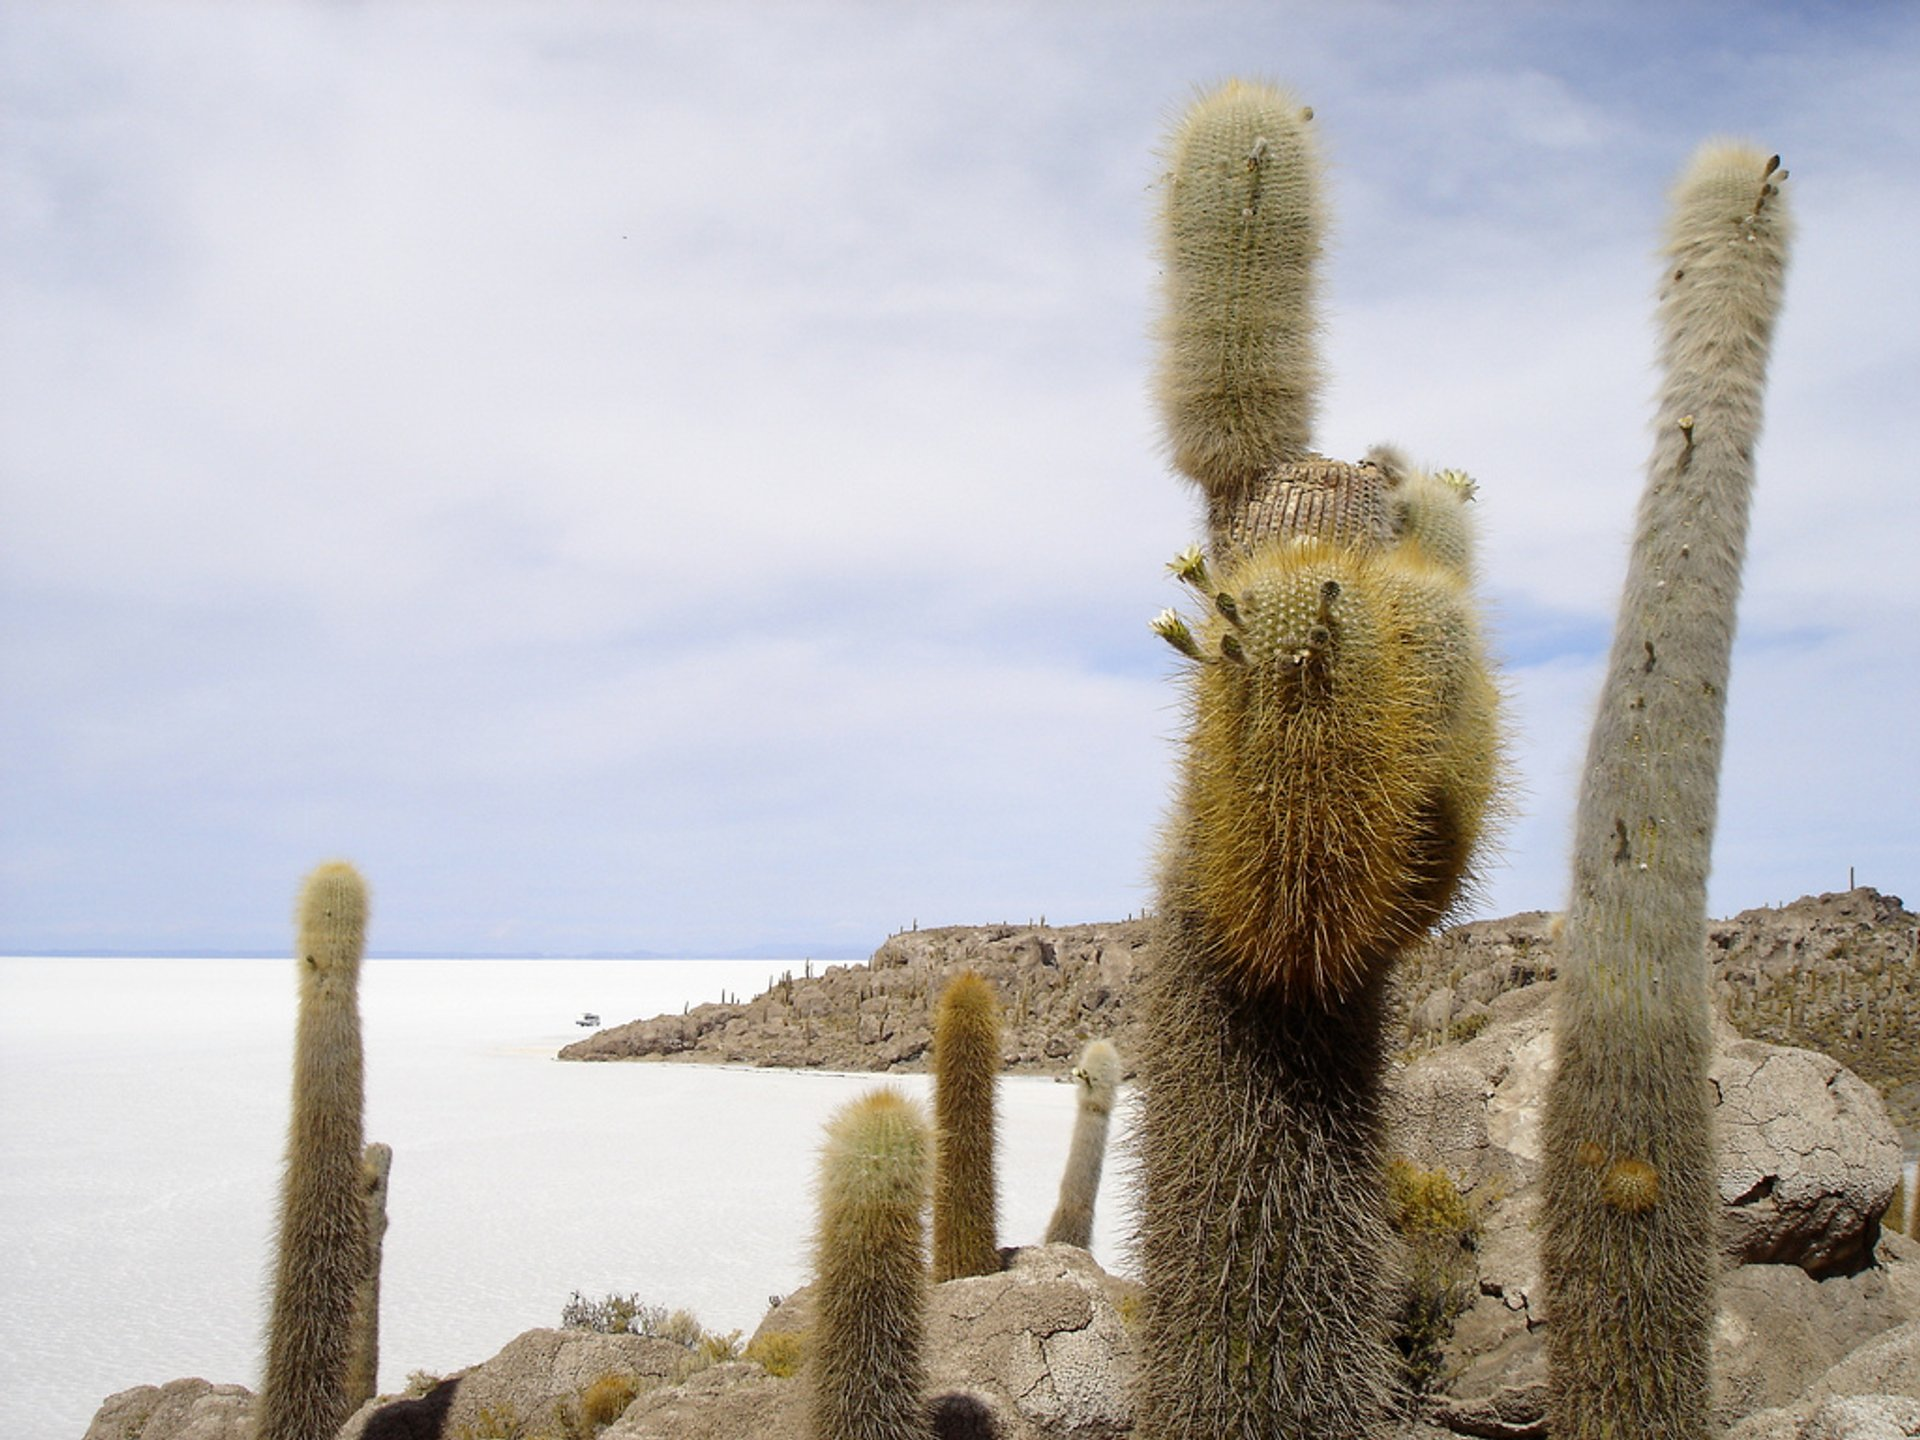 Best time for Blooming Cacti in Bolivia 2020